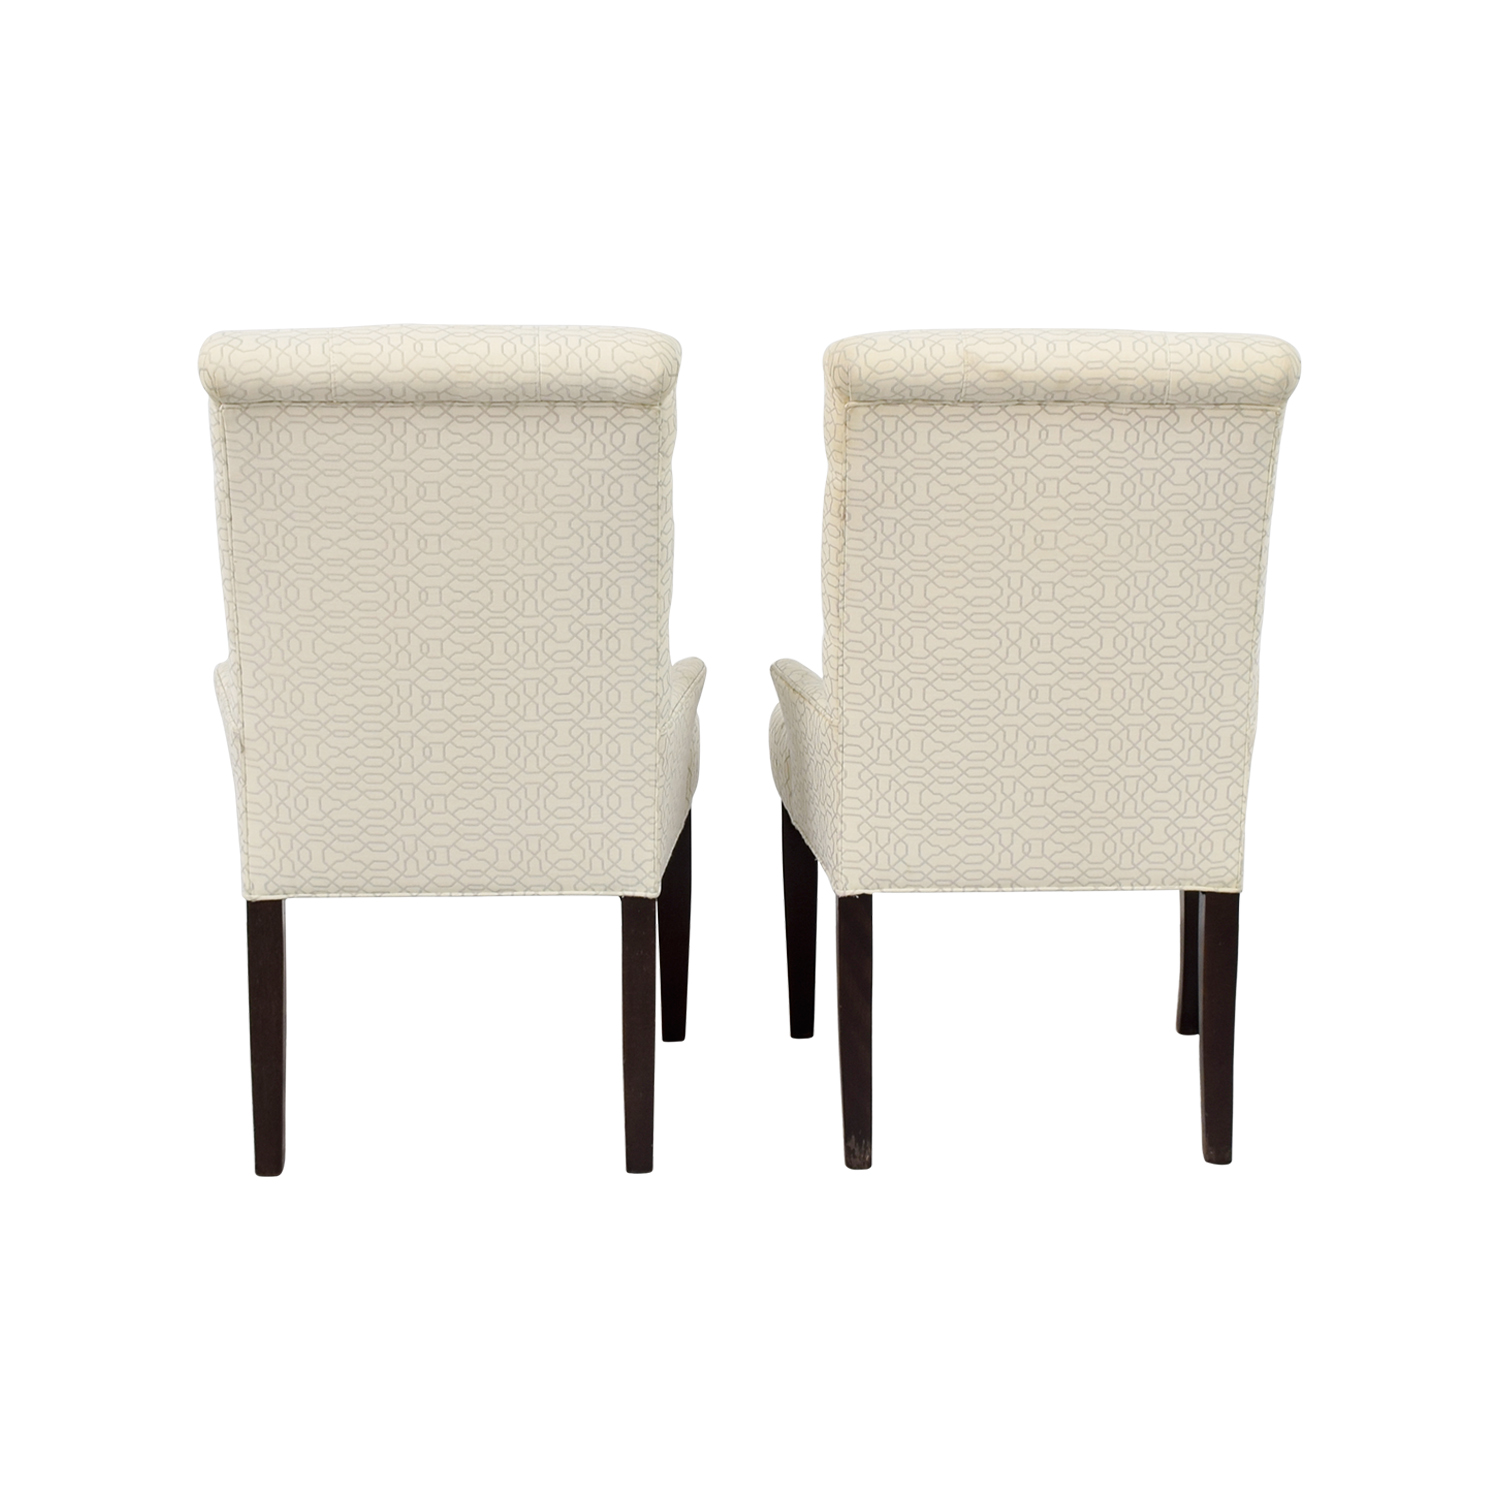 Ethan Allen Jaqueline White Accent Chair sale